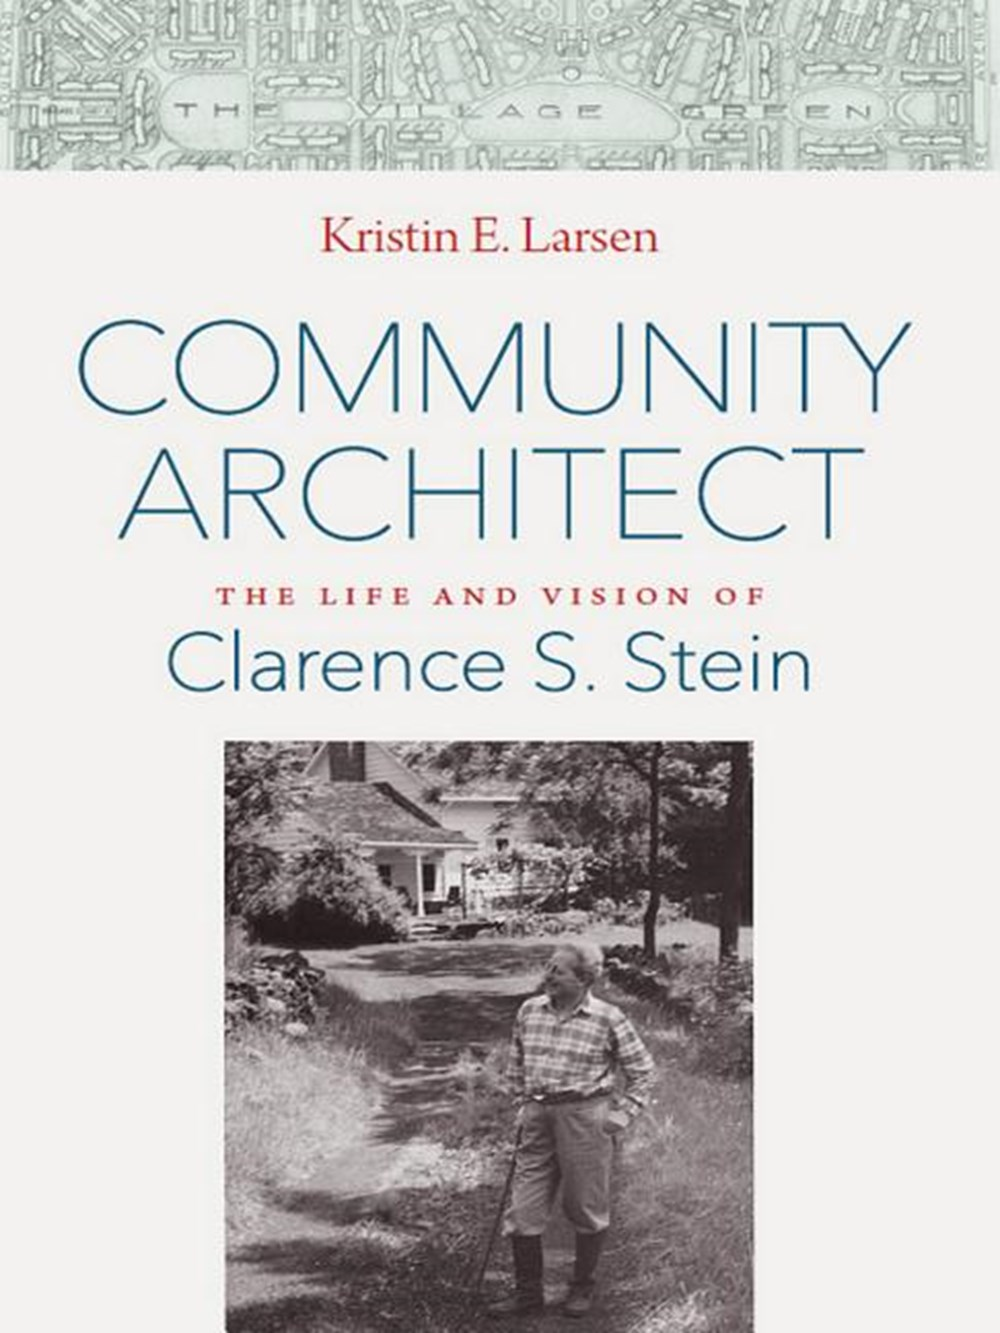 Community Architect The Life and Vision of Clarence S. Stein